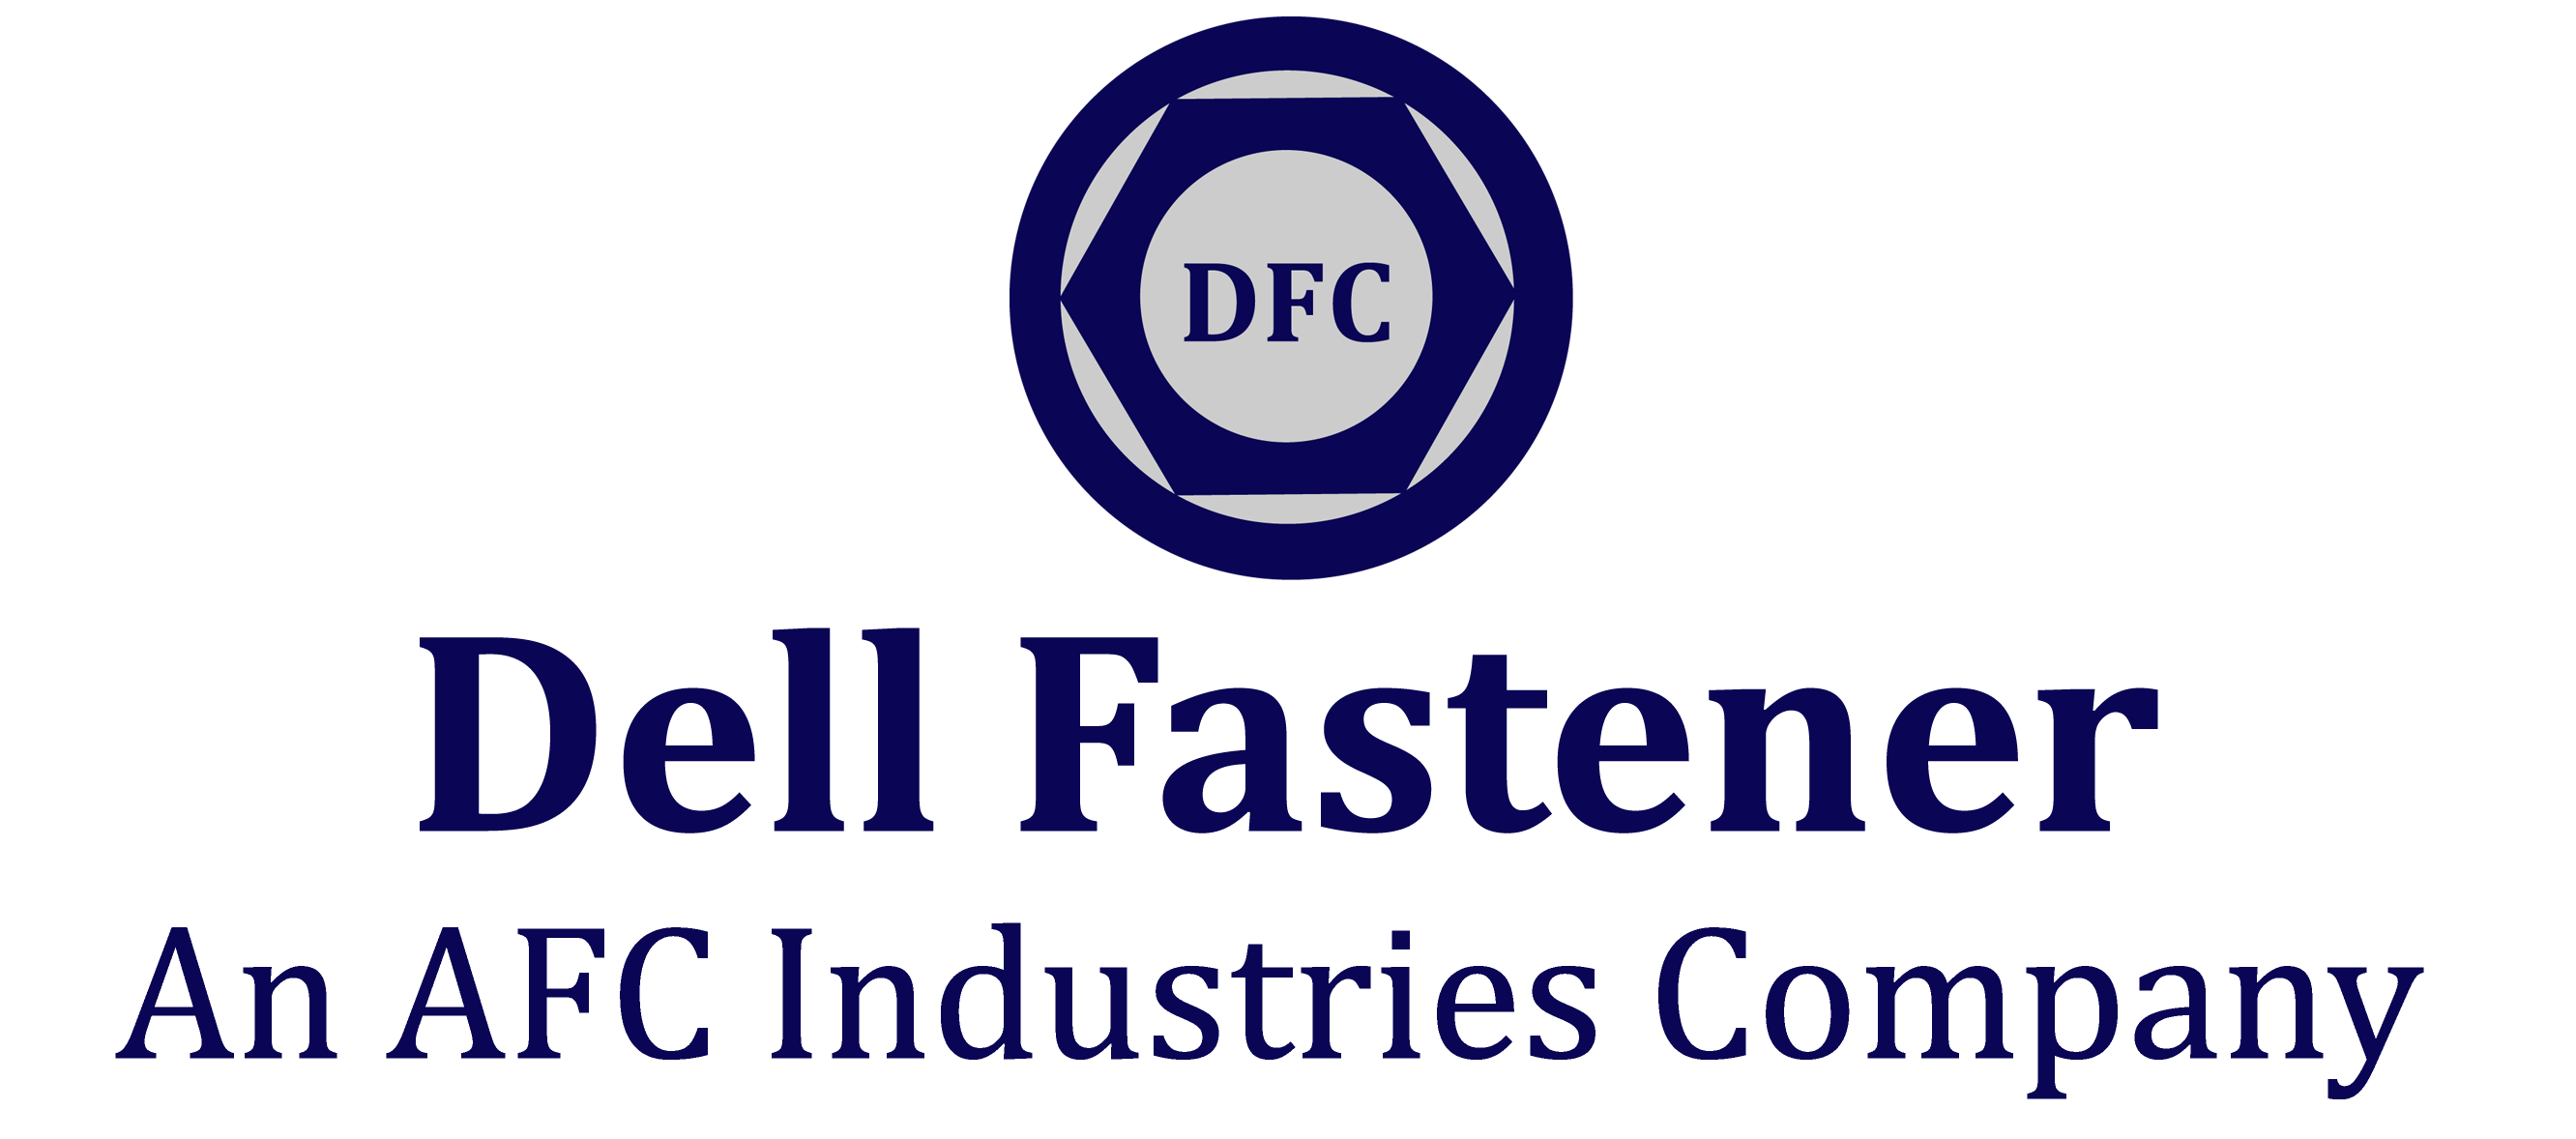 Dell_Fastener_circle_icon_centered_revision_17_oct_2017_final.png